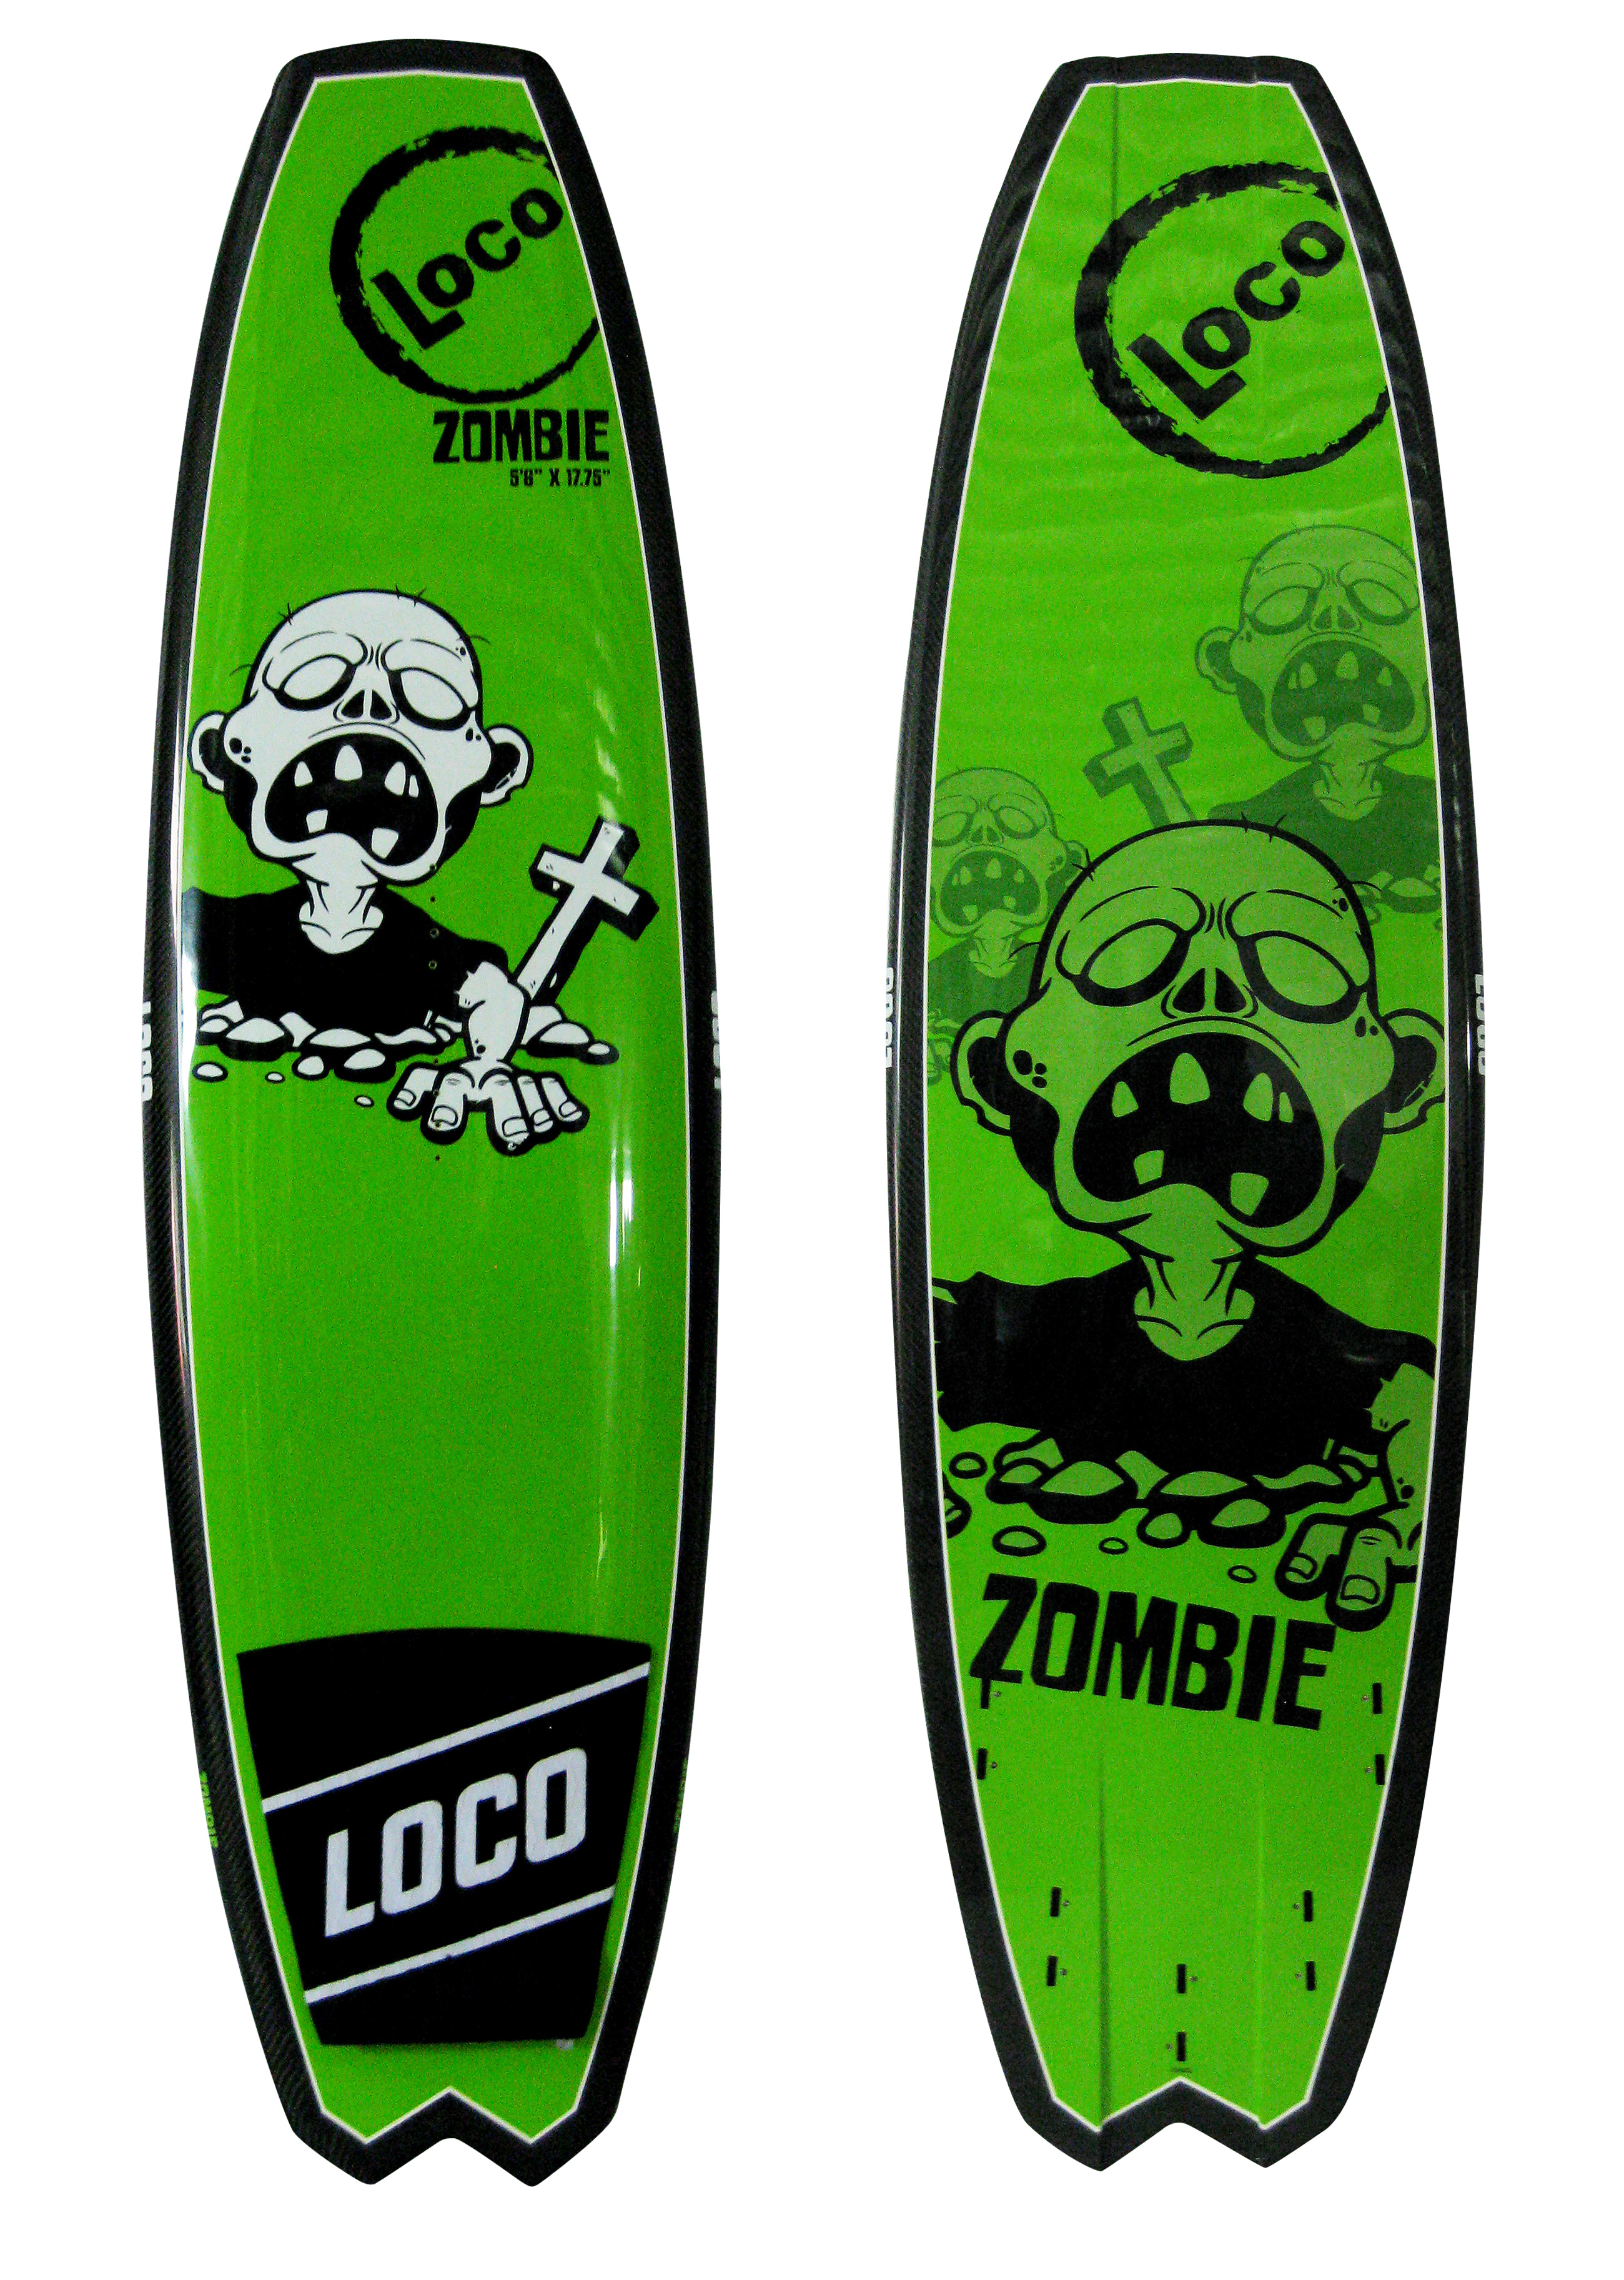 2016 loco zombie directional kite board